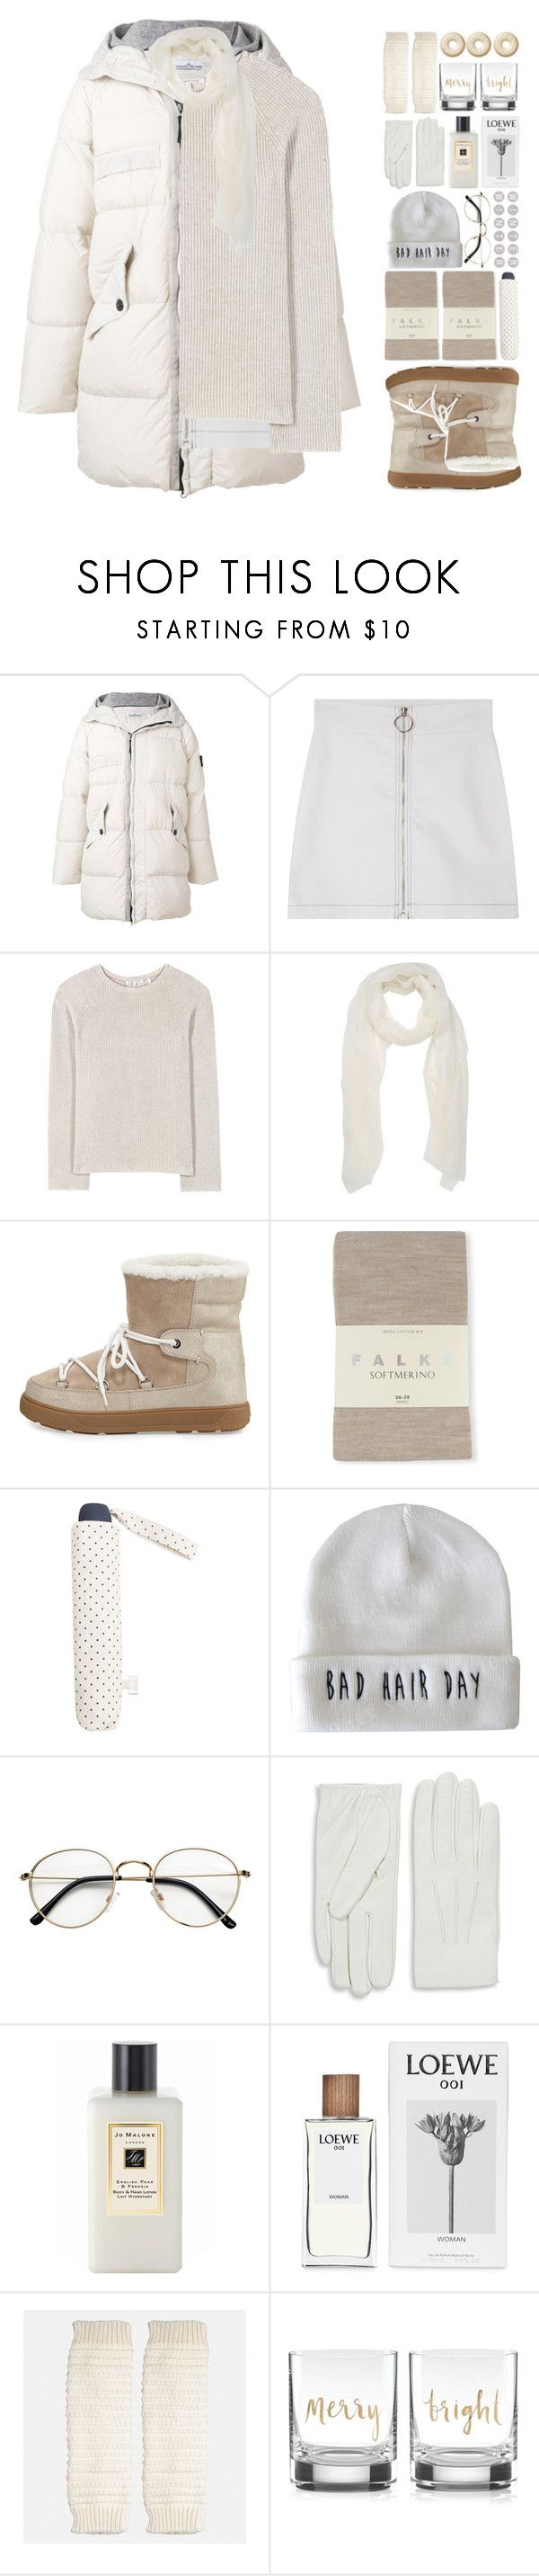 """6307"" by tiffanyelinor ❤ liked on Polyvore featuring STONE ISLAND, Helmut Lang, Moncler, Falke, MANGO, Valentino, Jo Malone, Loewe, Avenue and Kate Spade"